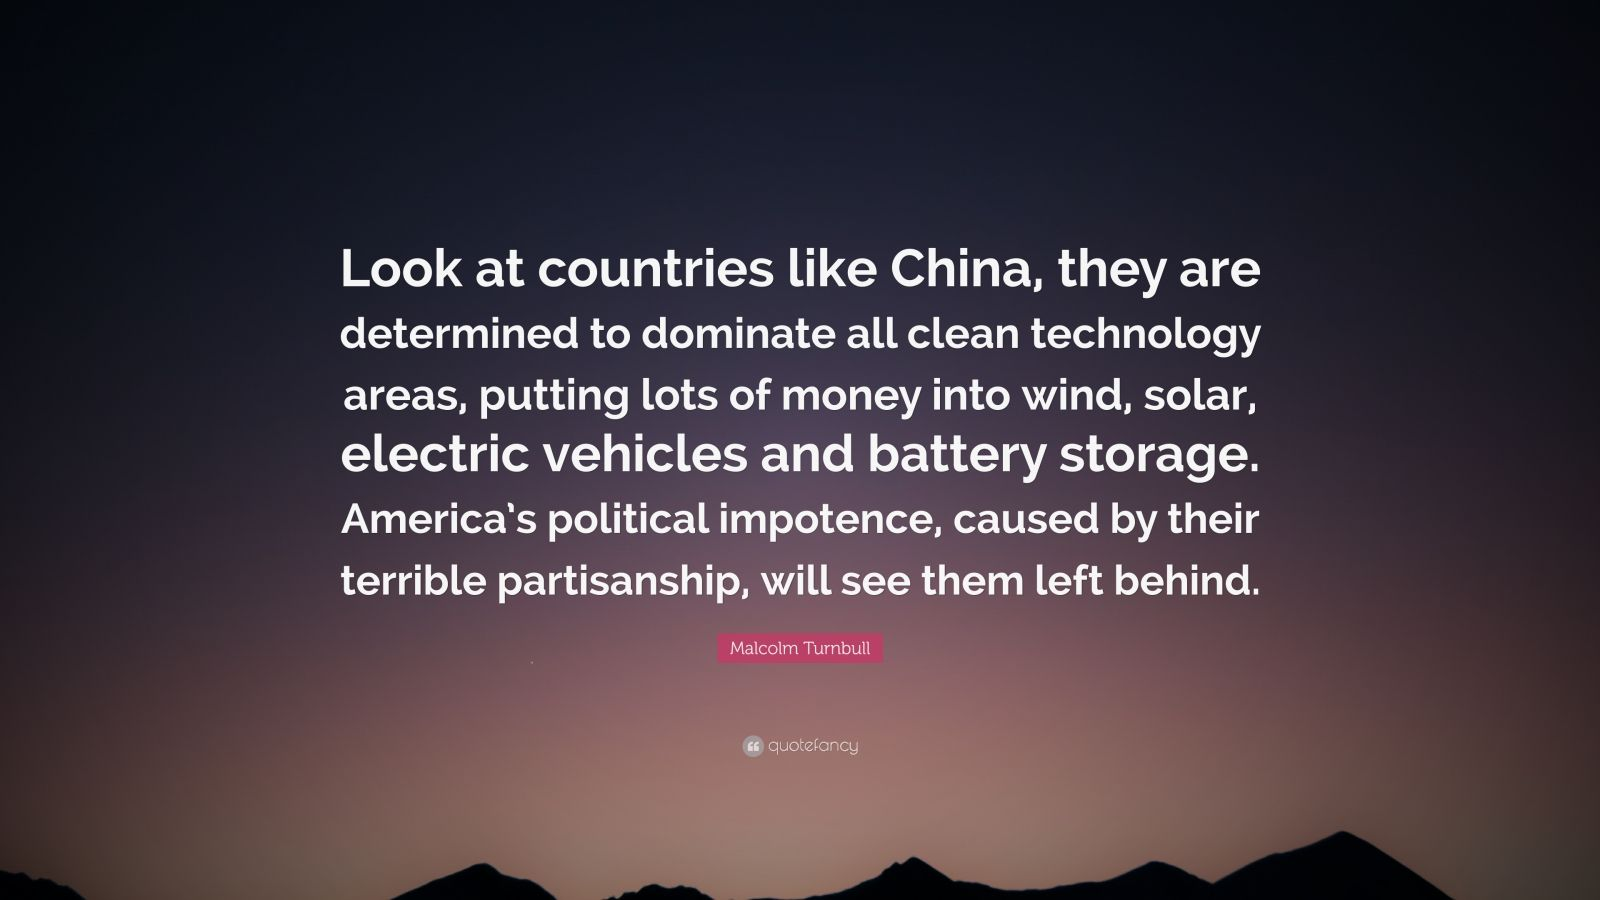 """Malcolm Turnbull Quote: """"Look at countries like China, they are determined to dominate all clean technology areas, putting lots of money into wind, solar, electric vehicles and battery storage. America's political impotence, caused by their terrible partisanship, will see them left behind."""""""